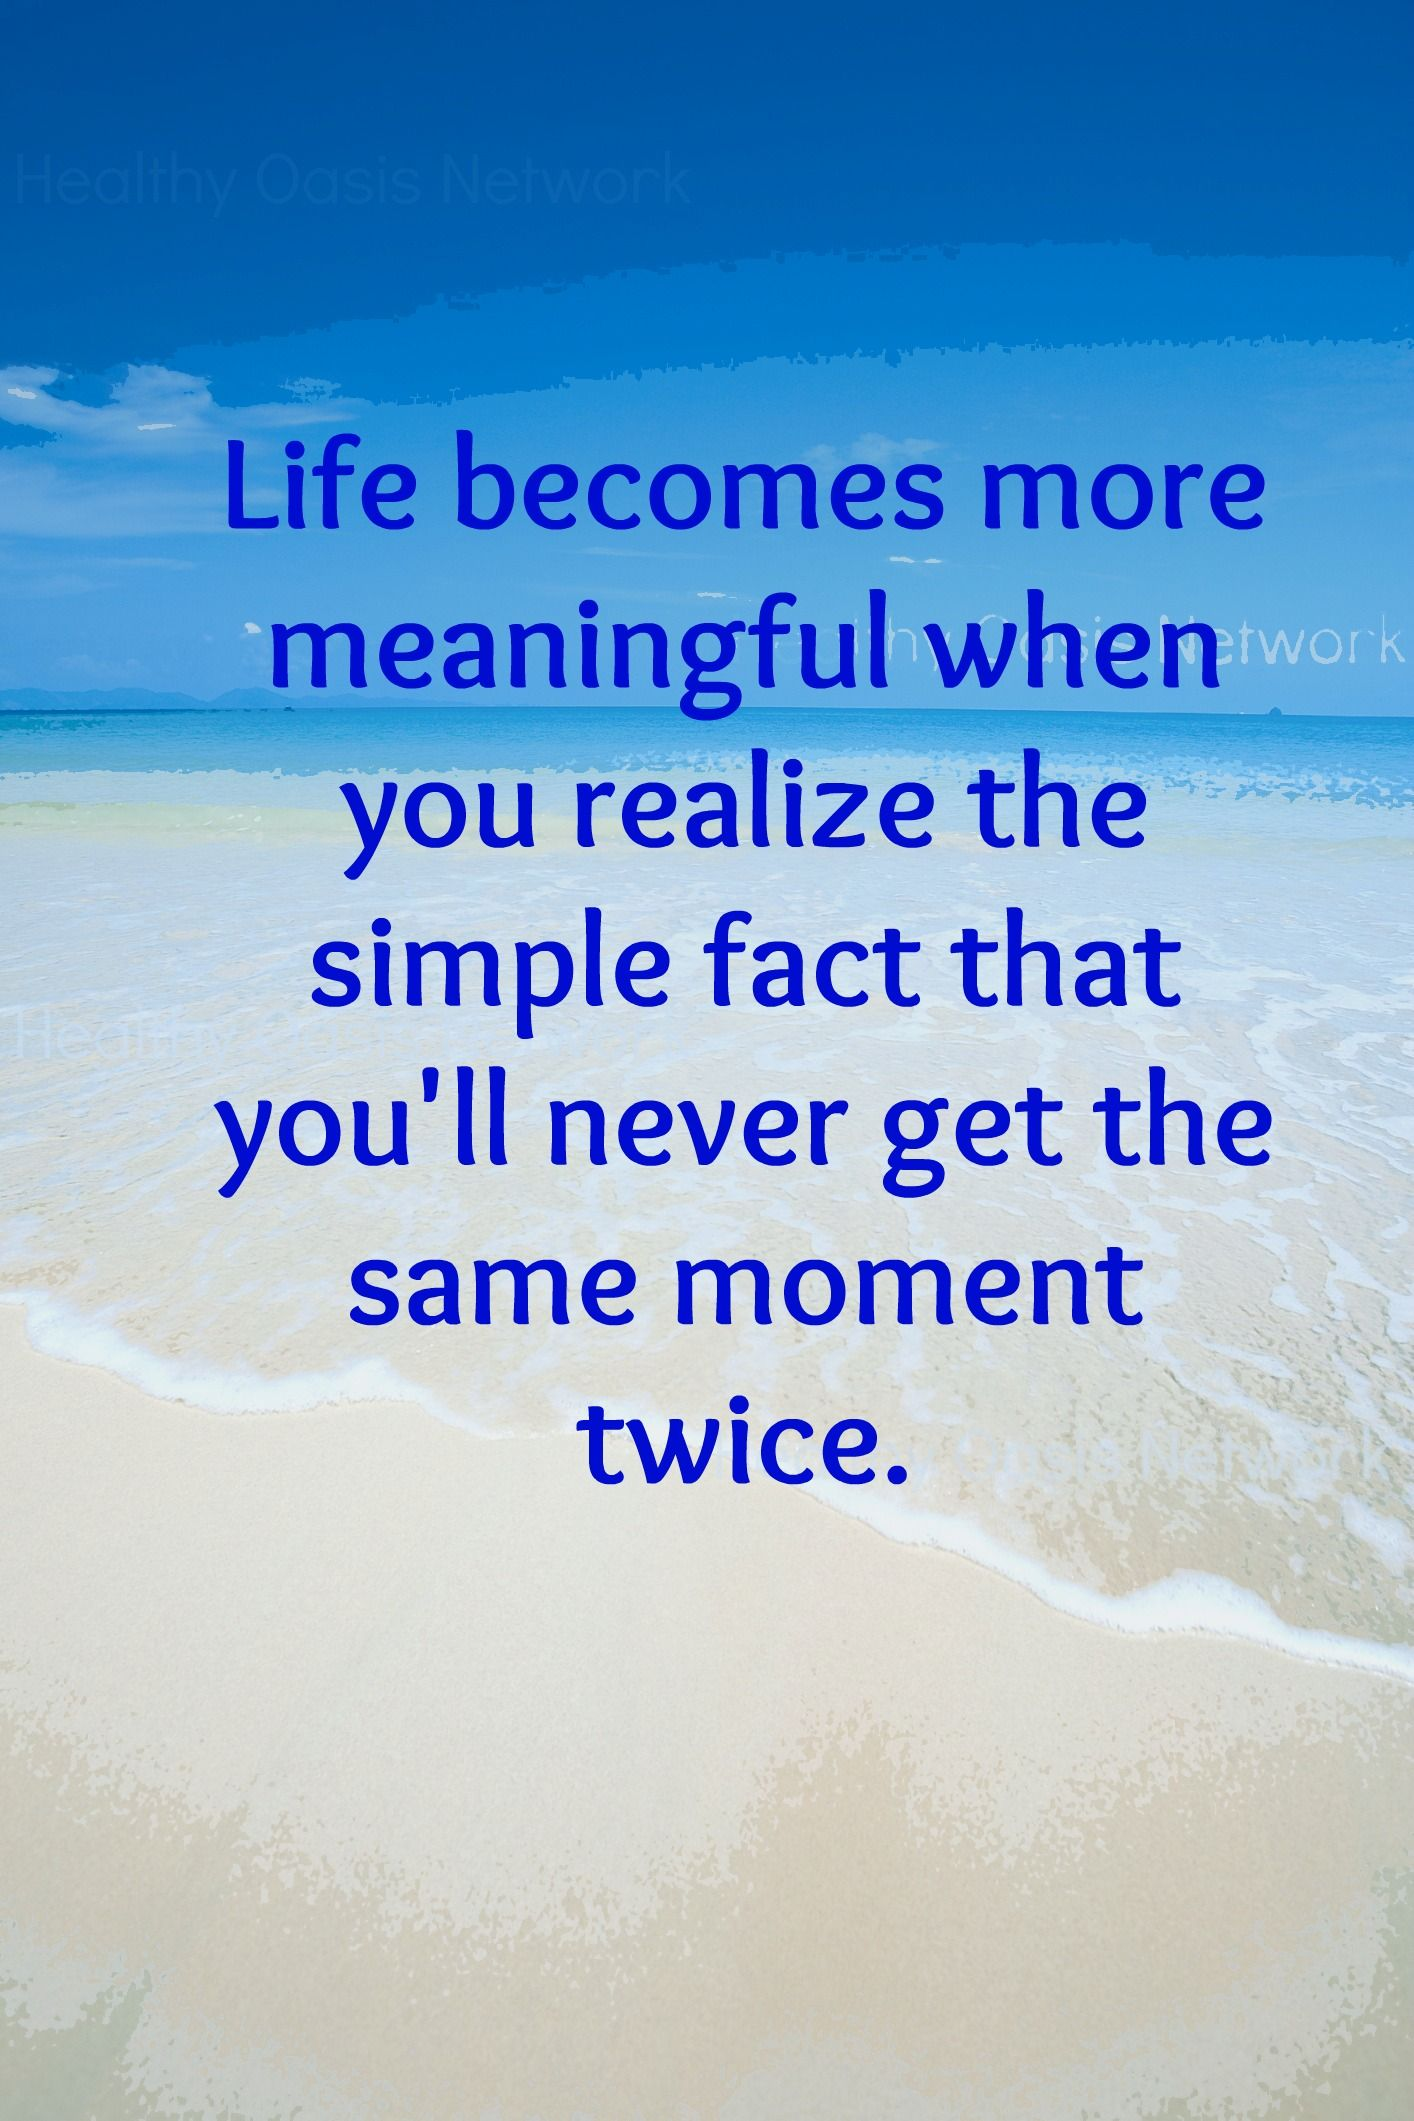 Life Becomes More Meaningful When You Realize The Simple Fact That